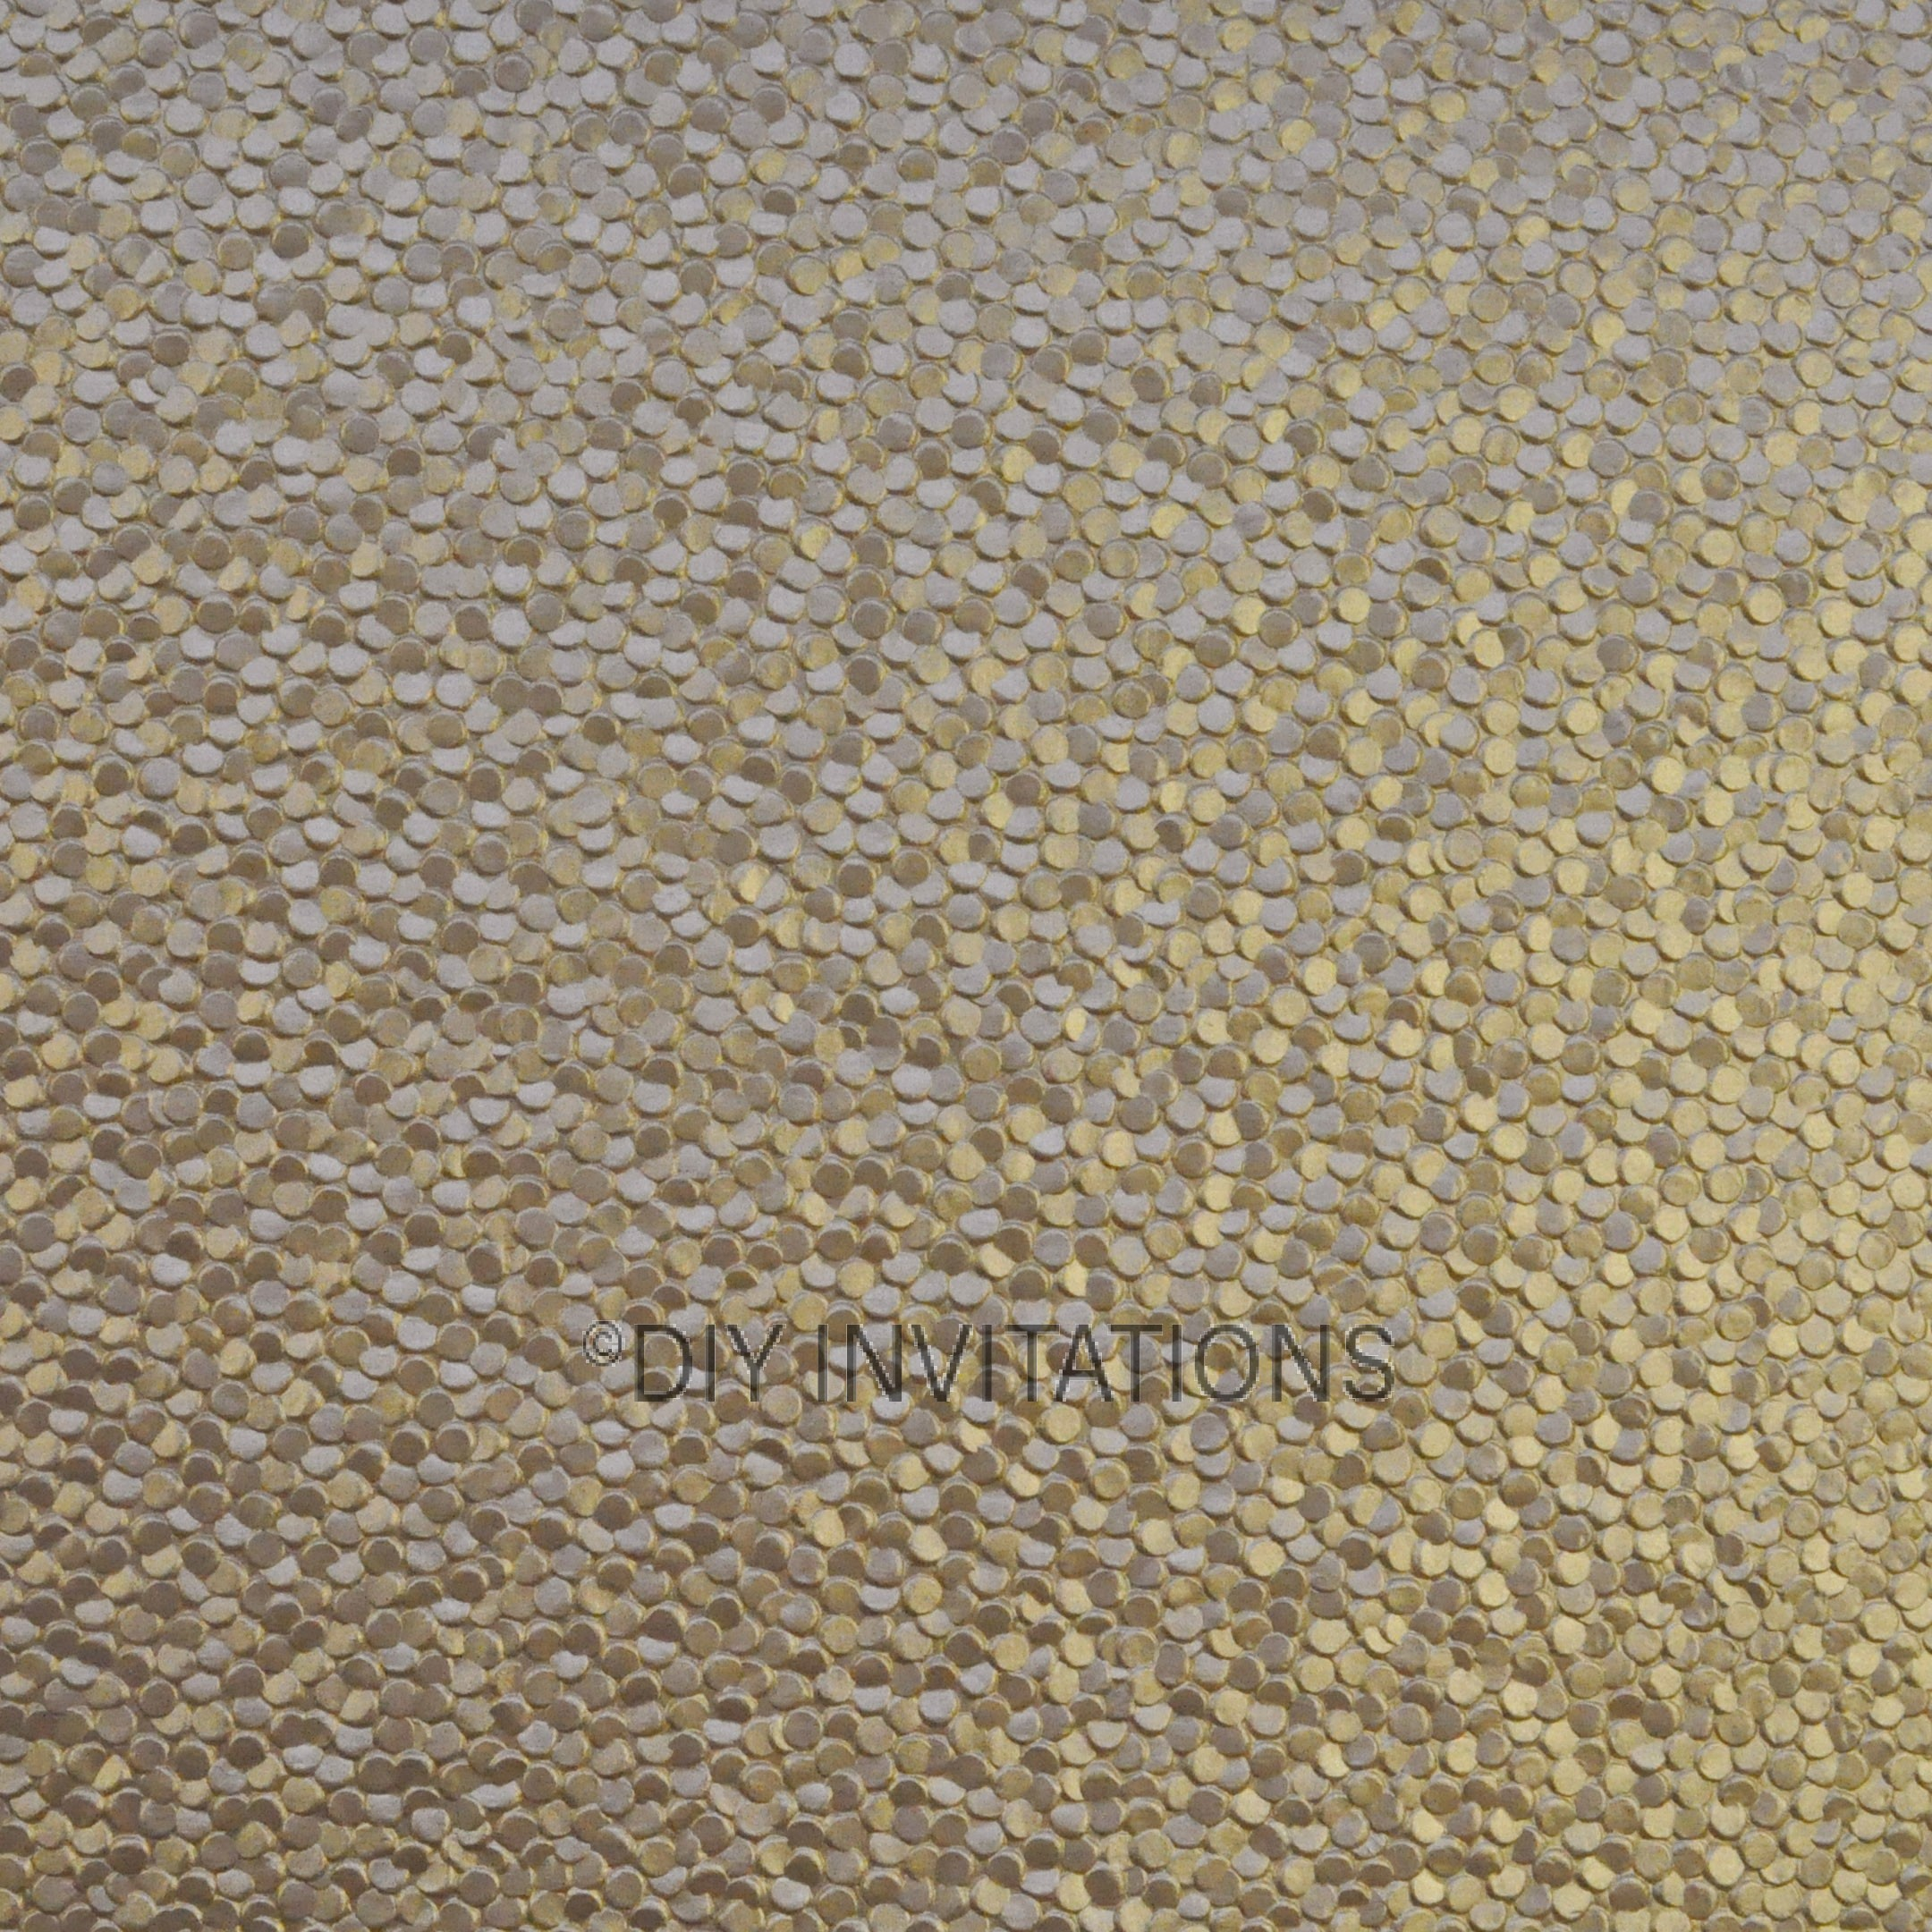 A4 Embossed Pebbles in Mink 150gsm